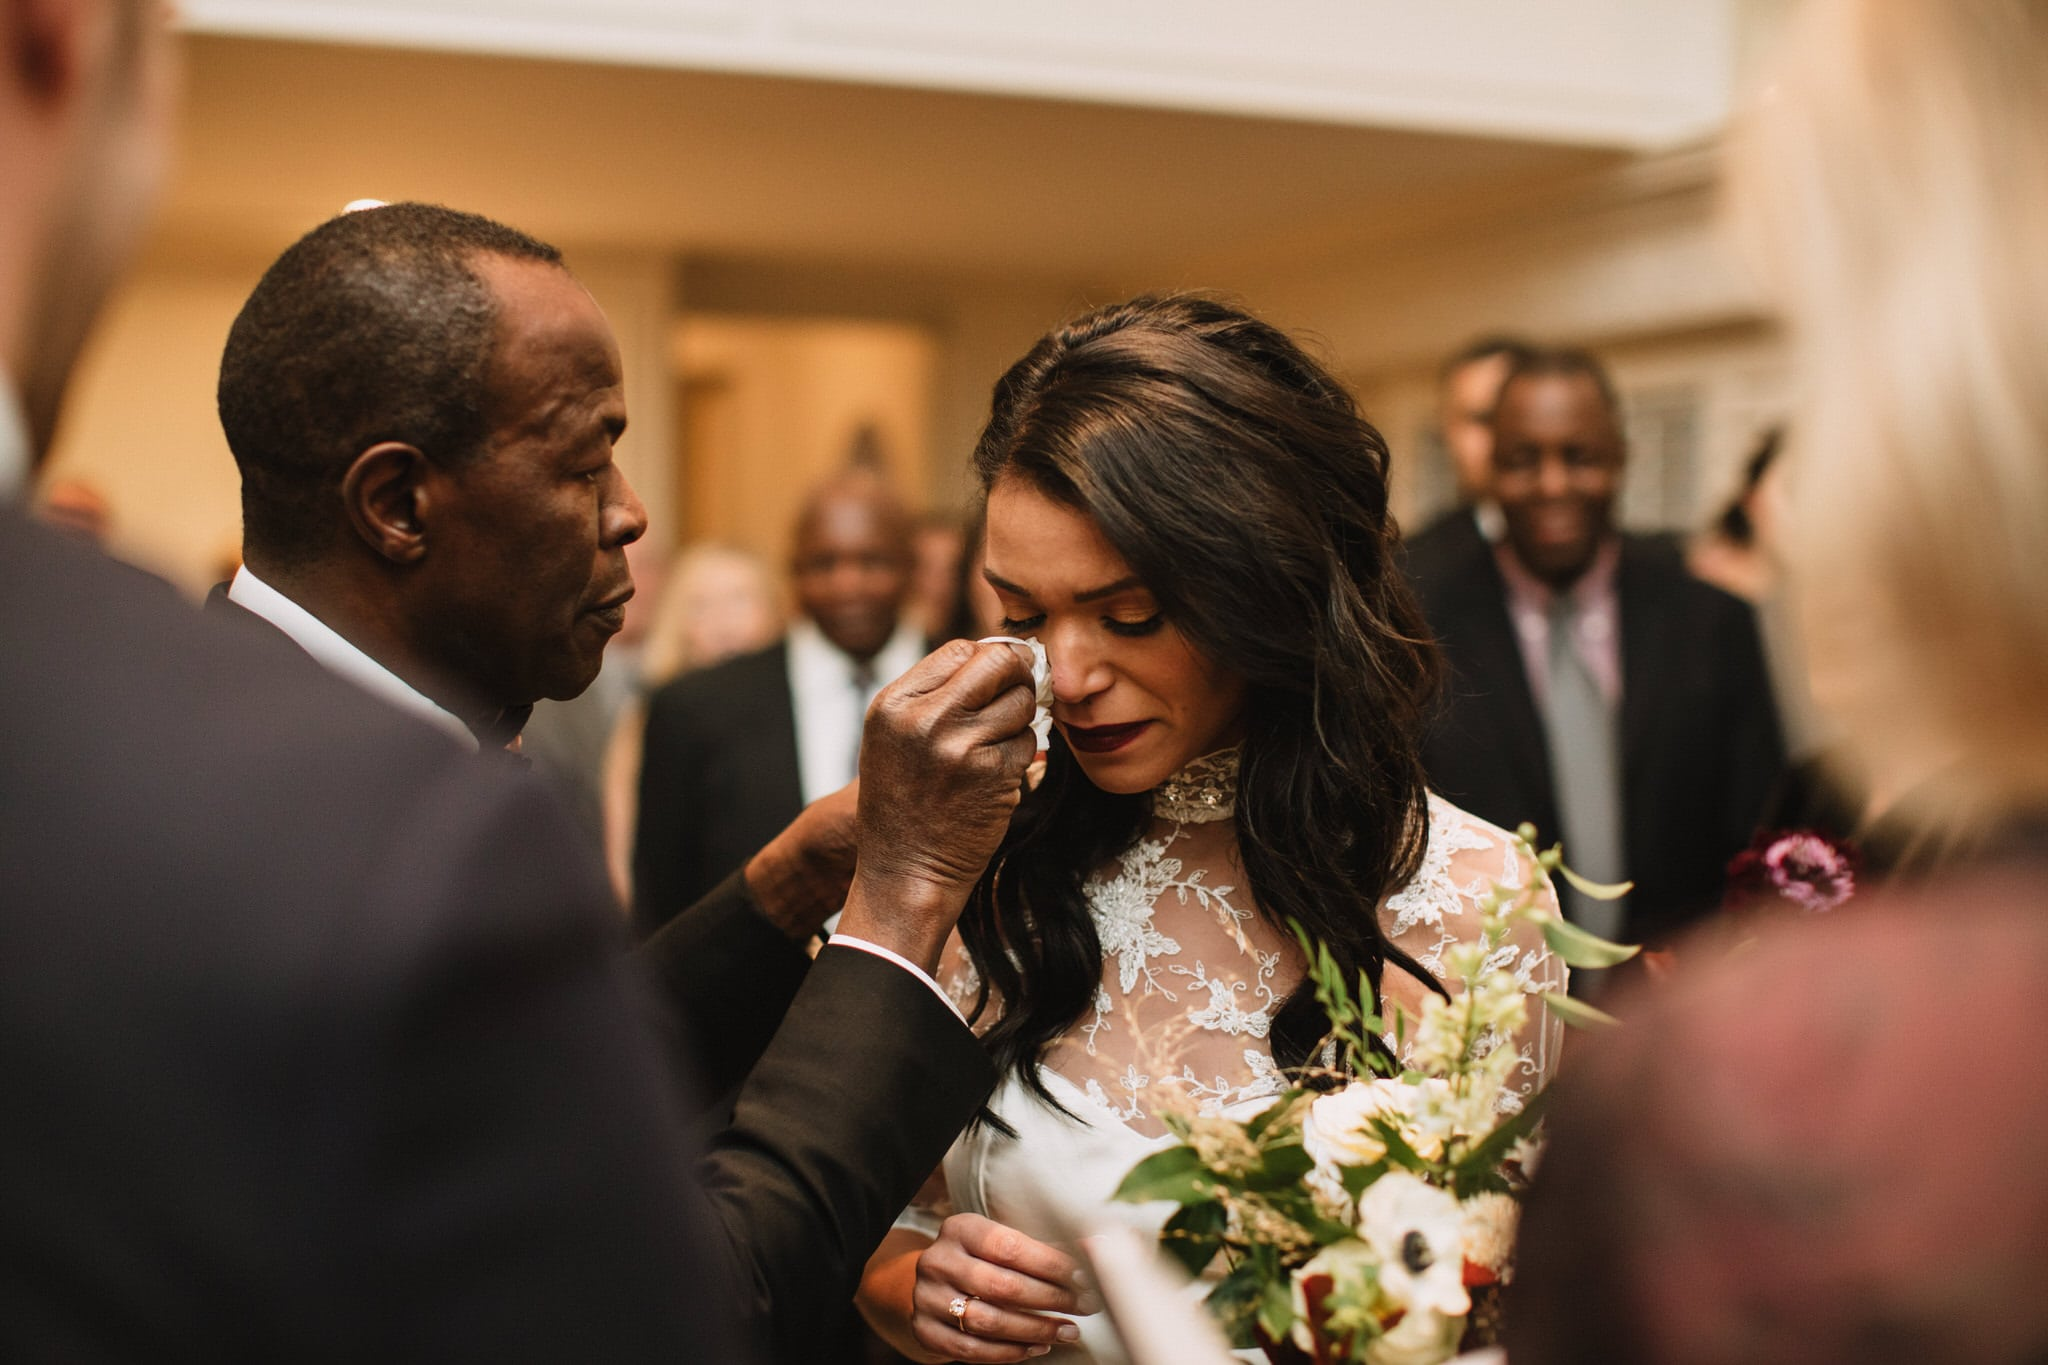 Father wipes brides tears at Graydon Hall Manor Wedding in Toronto